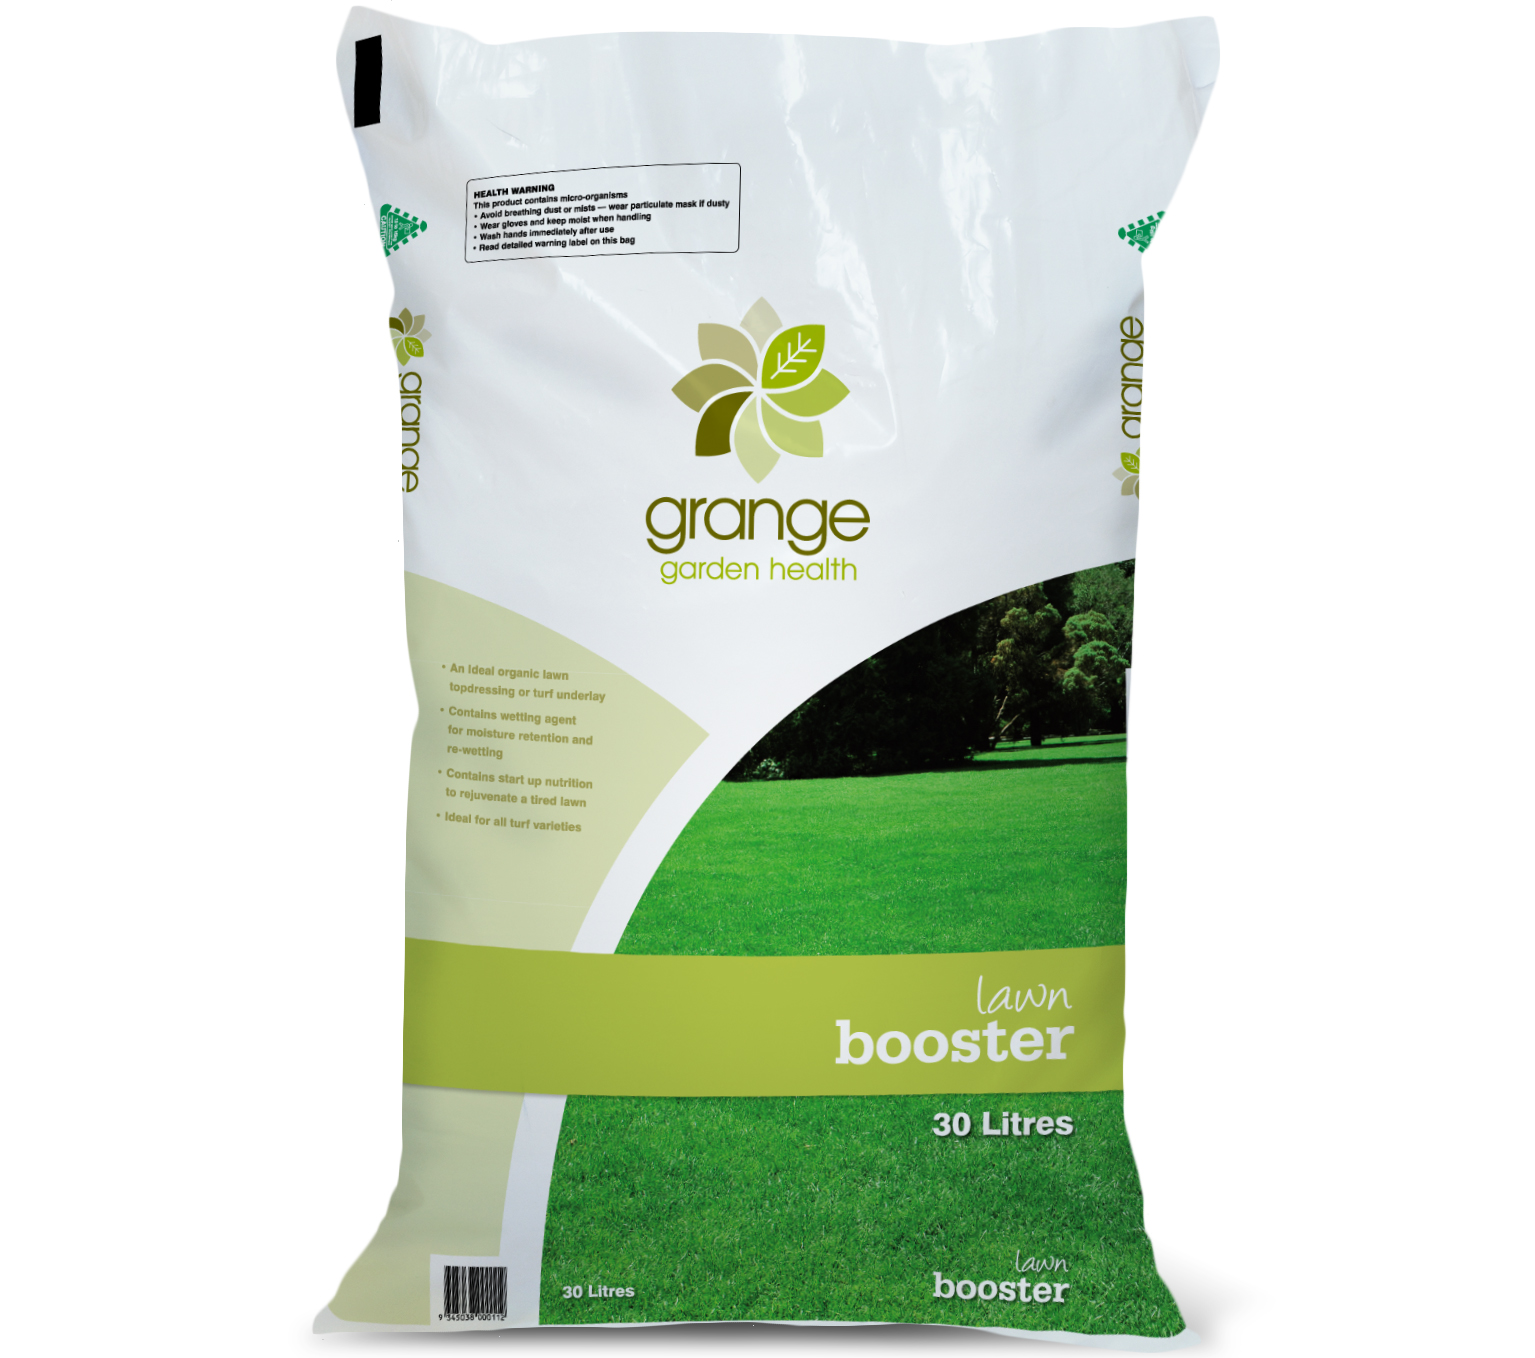 Lawn Booster